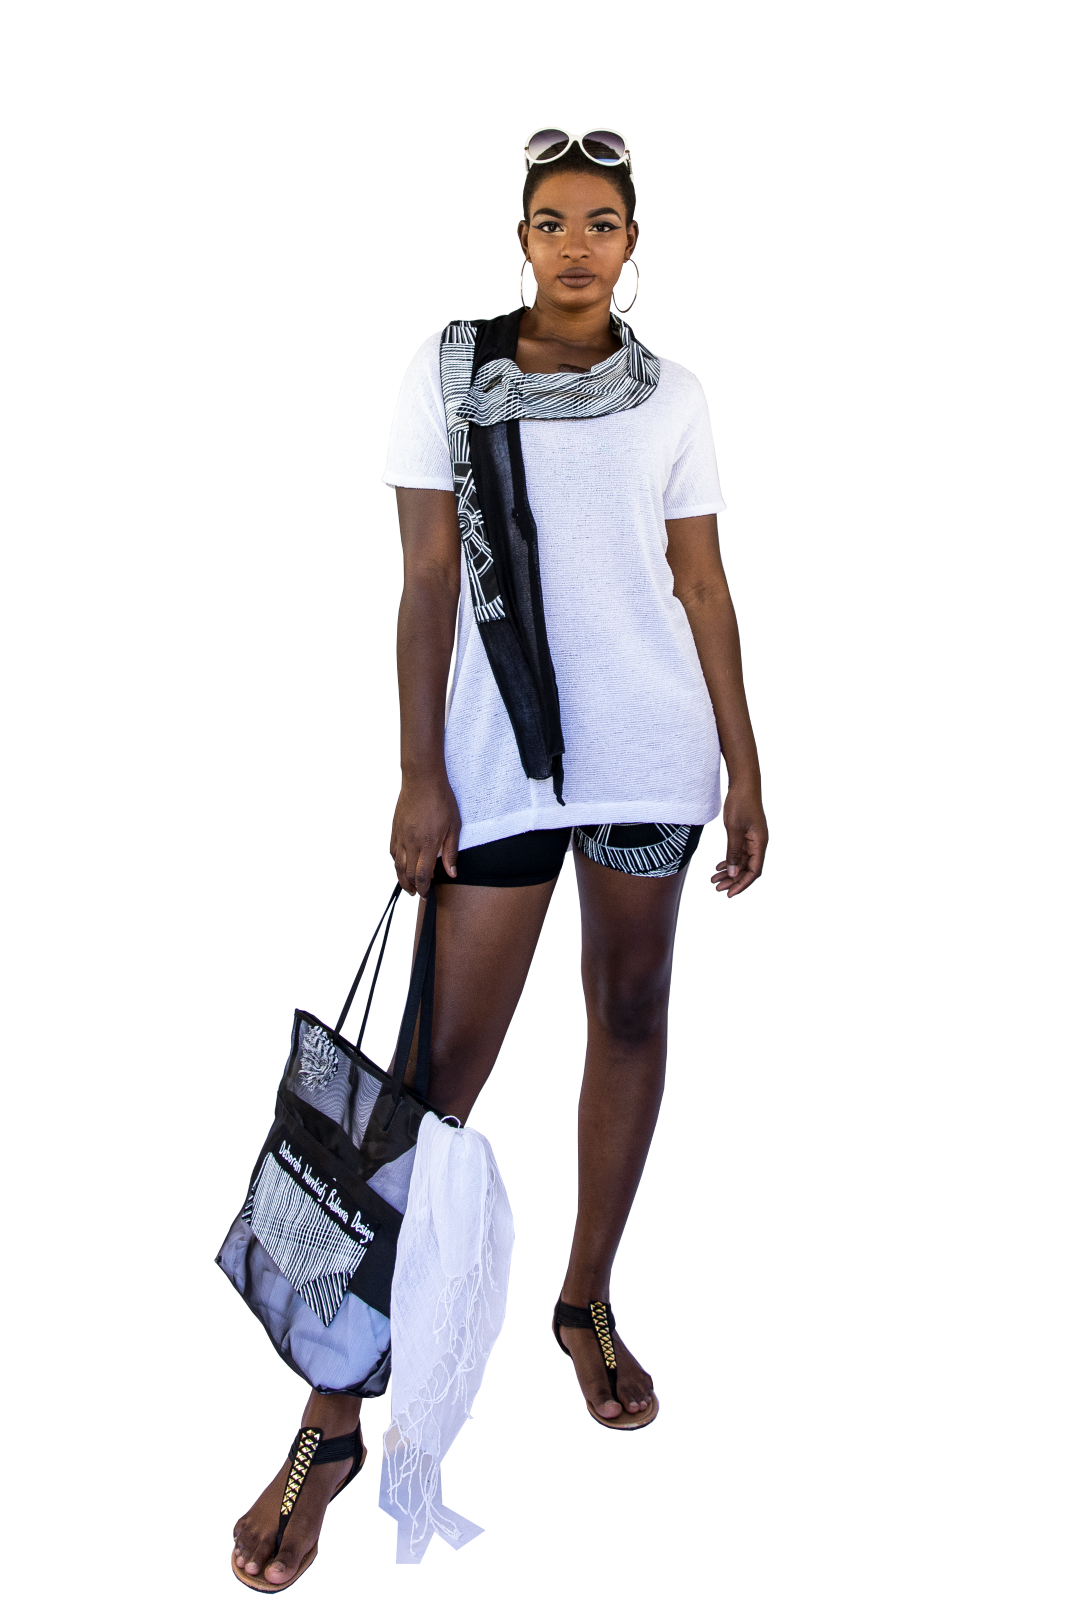 sally anne lyons creative clothing solutions for women 2019_052_transparent.png